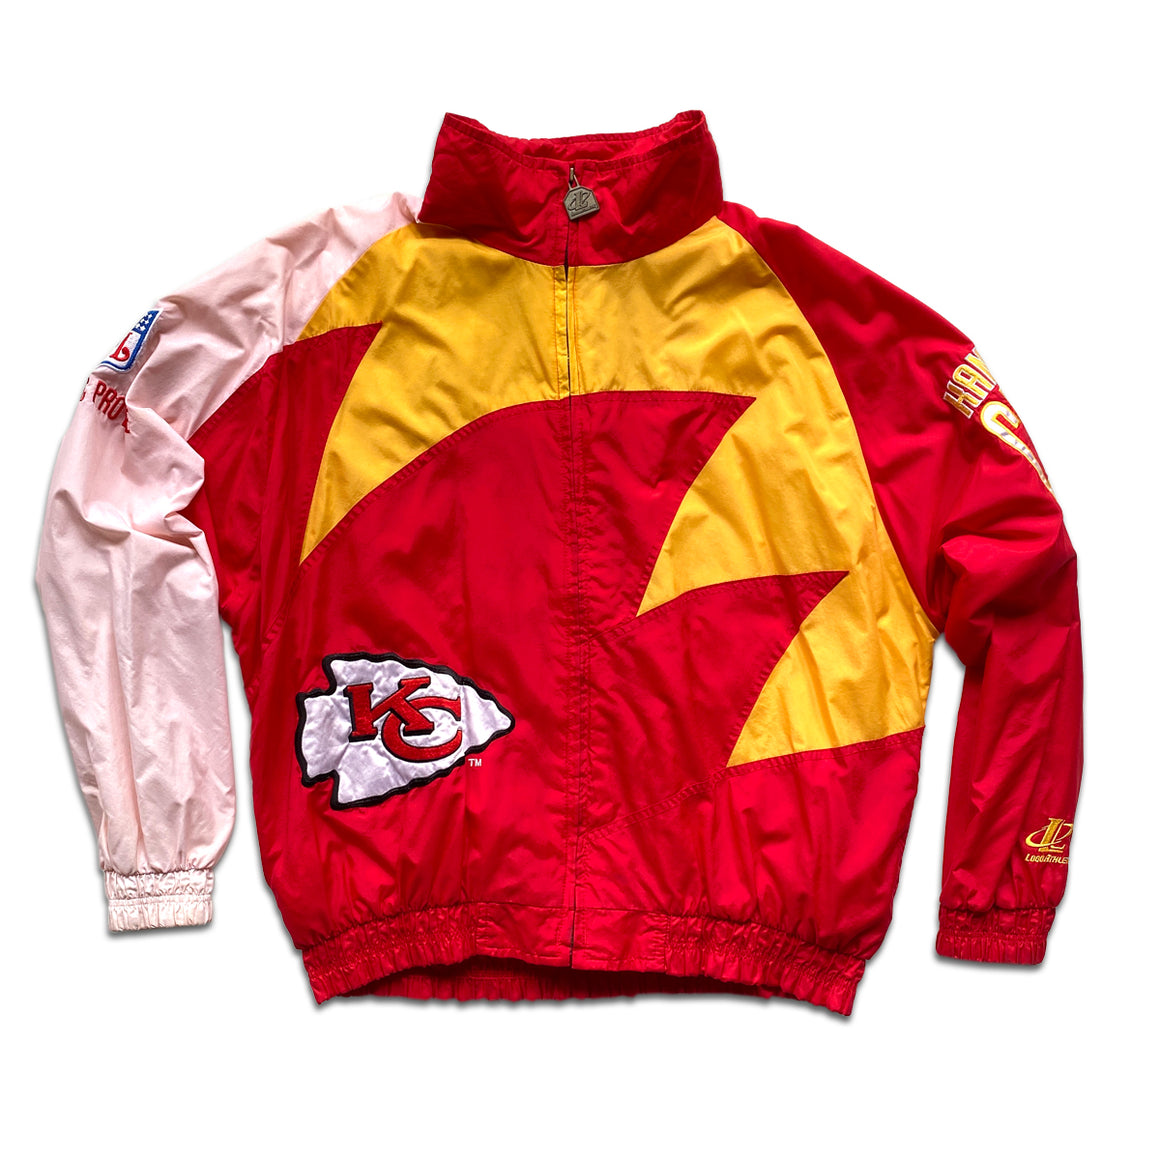 WESTSIDE STOREY VINTAGE | LOGO ATHLETIC PRO LINE KC CHIEFS SHARKTOOTH JACKET